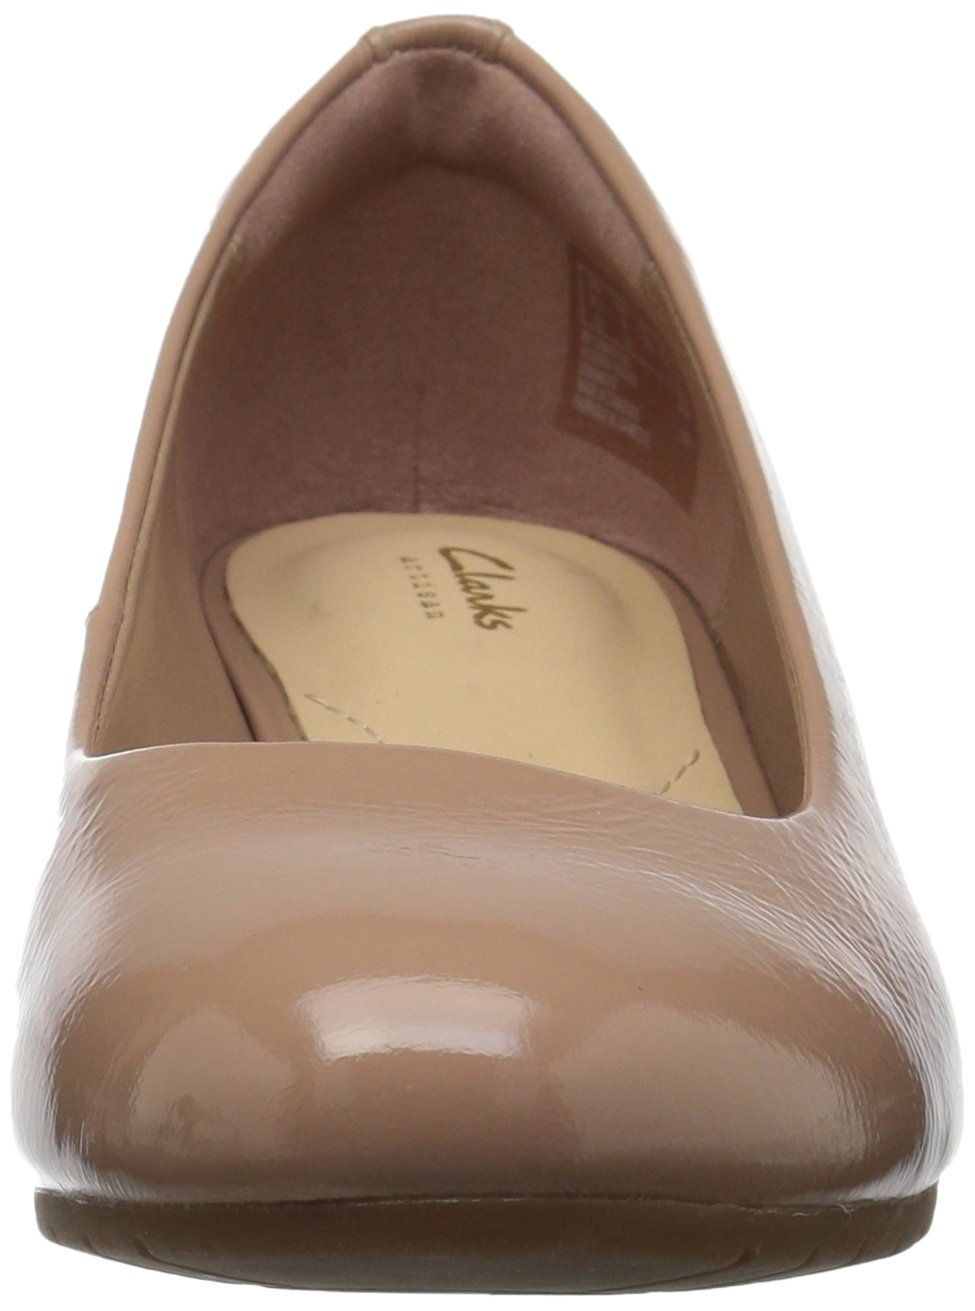 CLARKS Women's Vendra Bloom Wedge Pump Patent B073ZL9PZD 5.5 B(M) US|Beige Patent Pump Leather 3d03a1